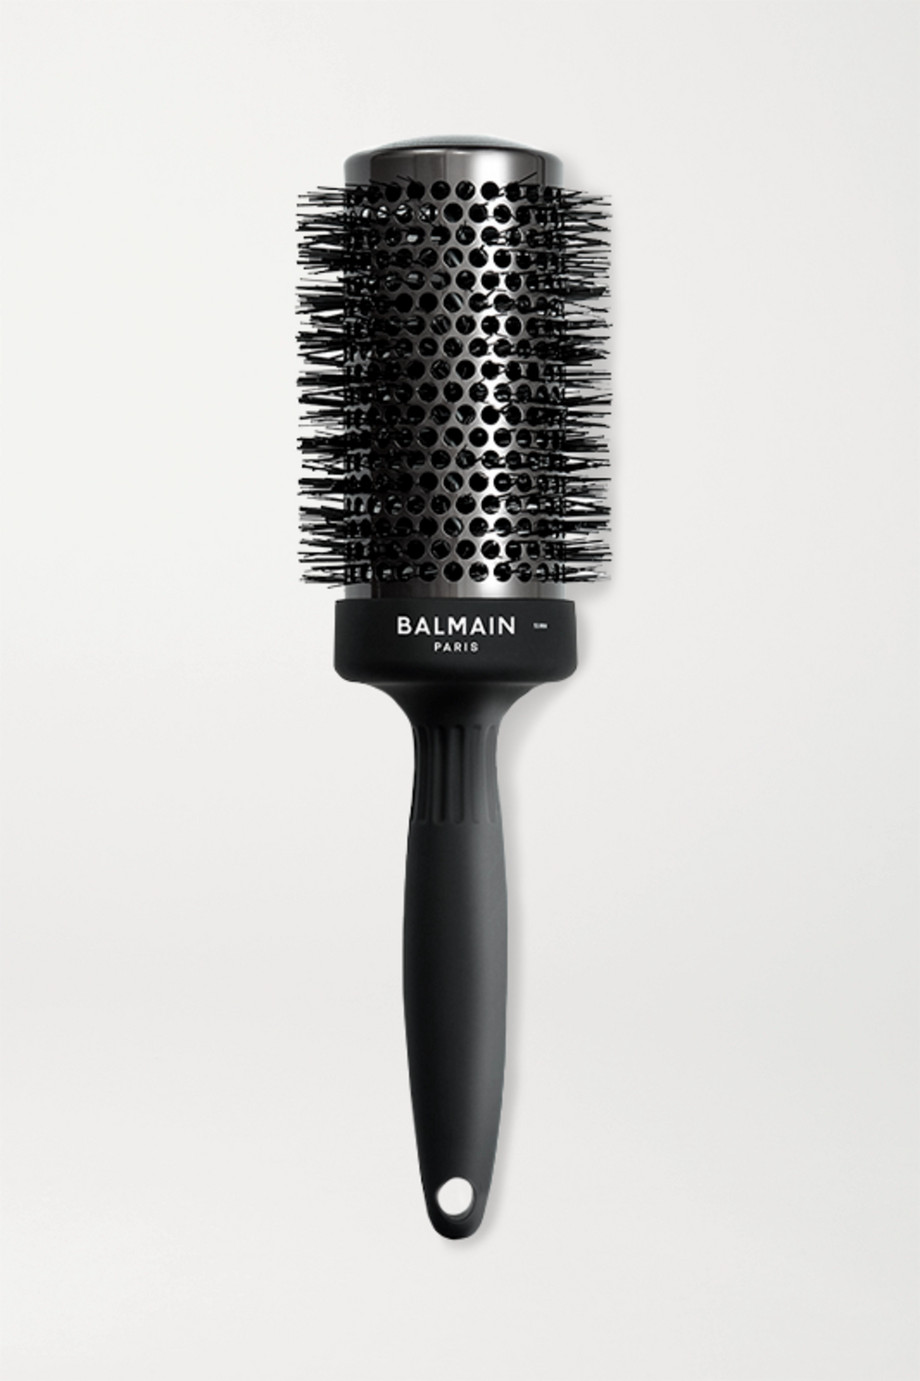 BALMAIN PARIS HAIR COUTURE Ceramic Round Brush 53mm